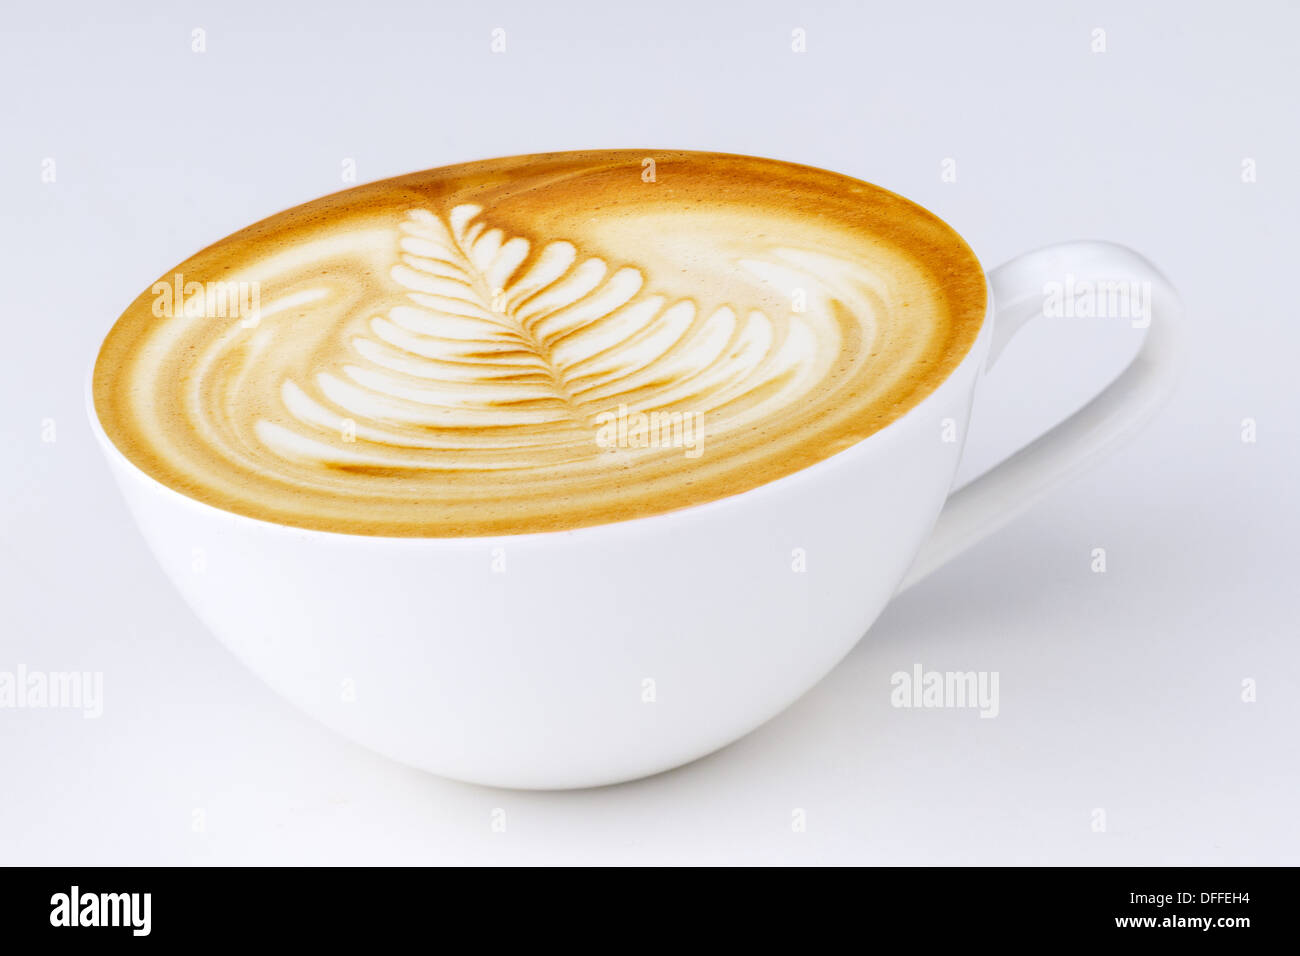 Cappuccino in a white cup on a white background - Stock Image